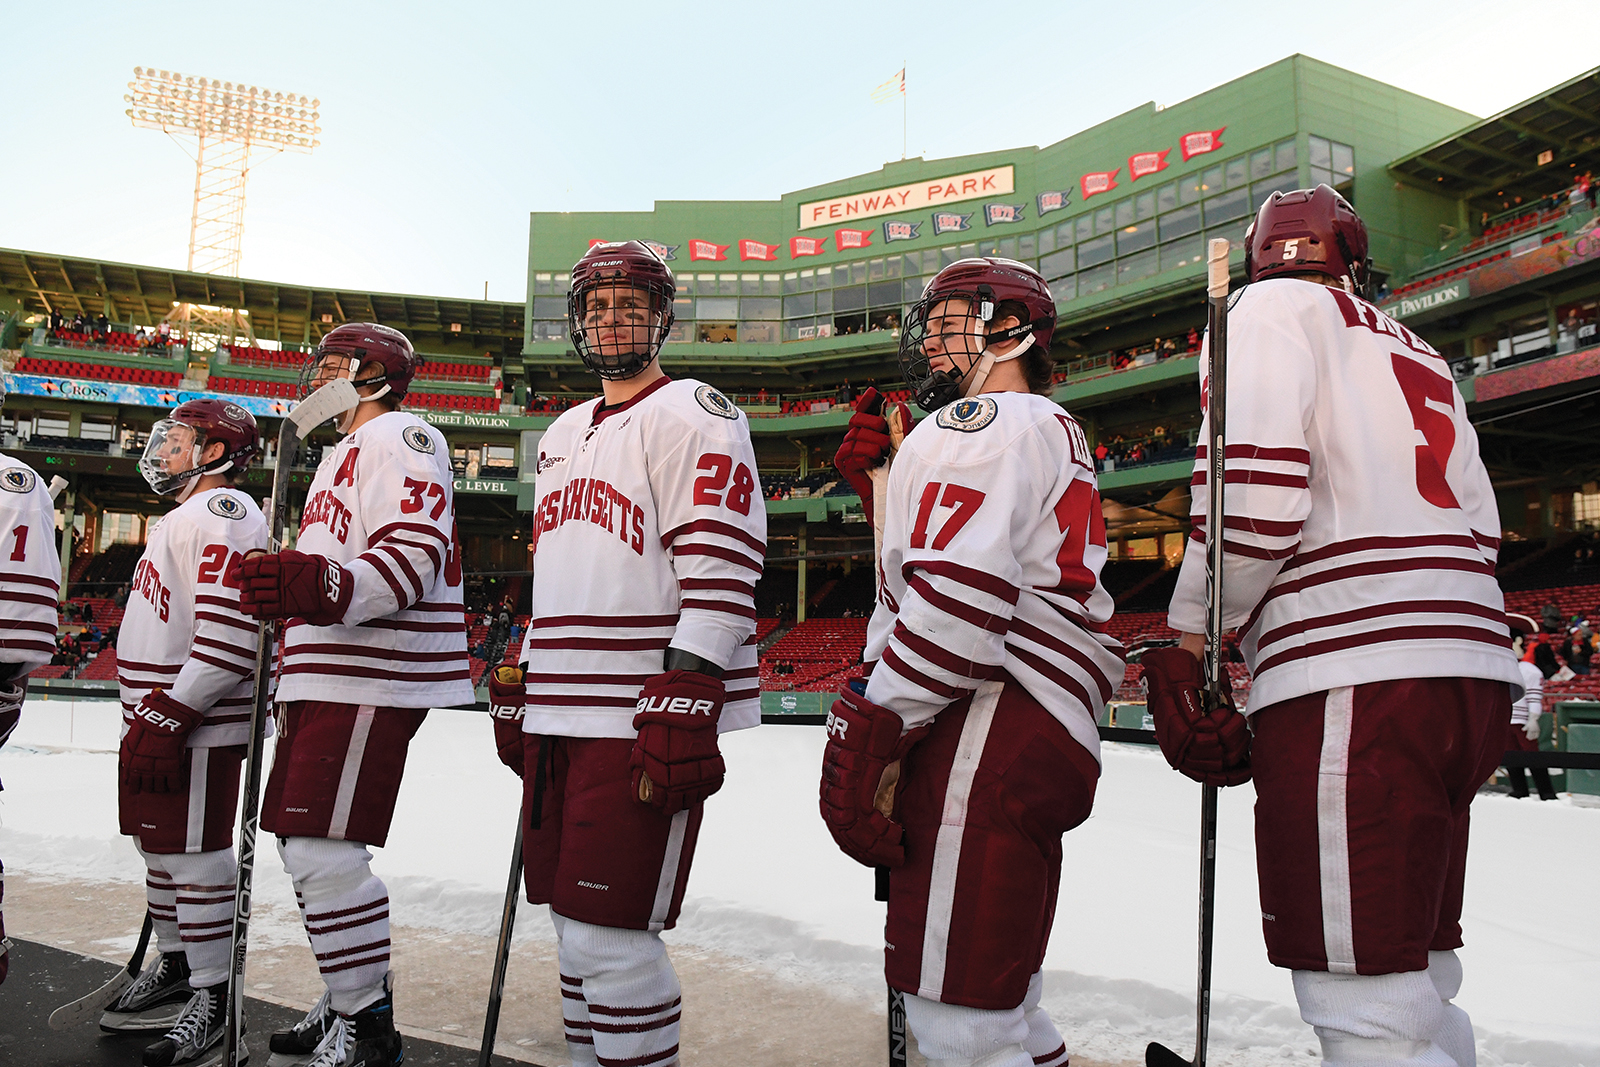 The UMass Amherst ice hockey team lines up at Fenway Park in Boston.